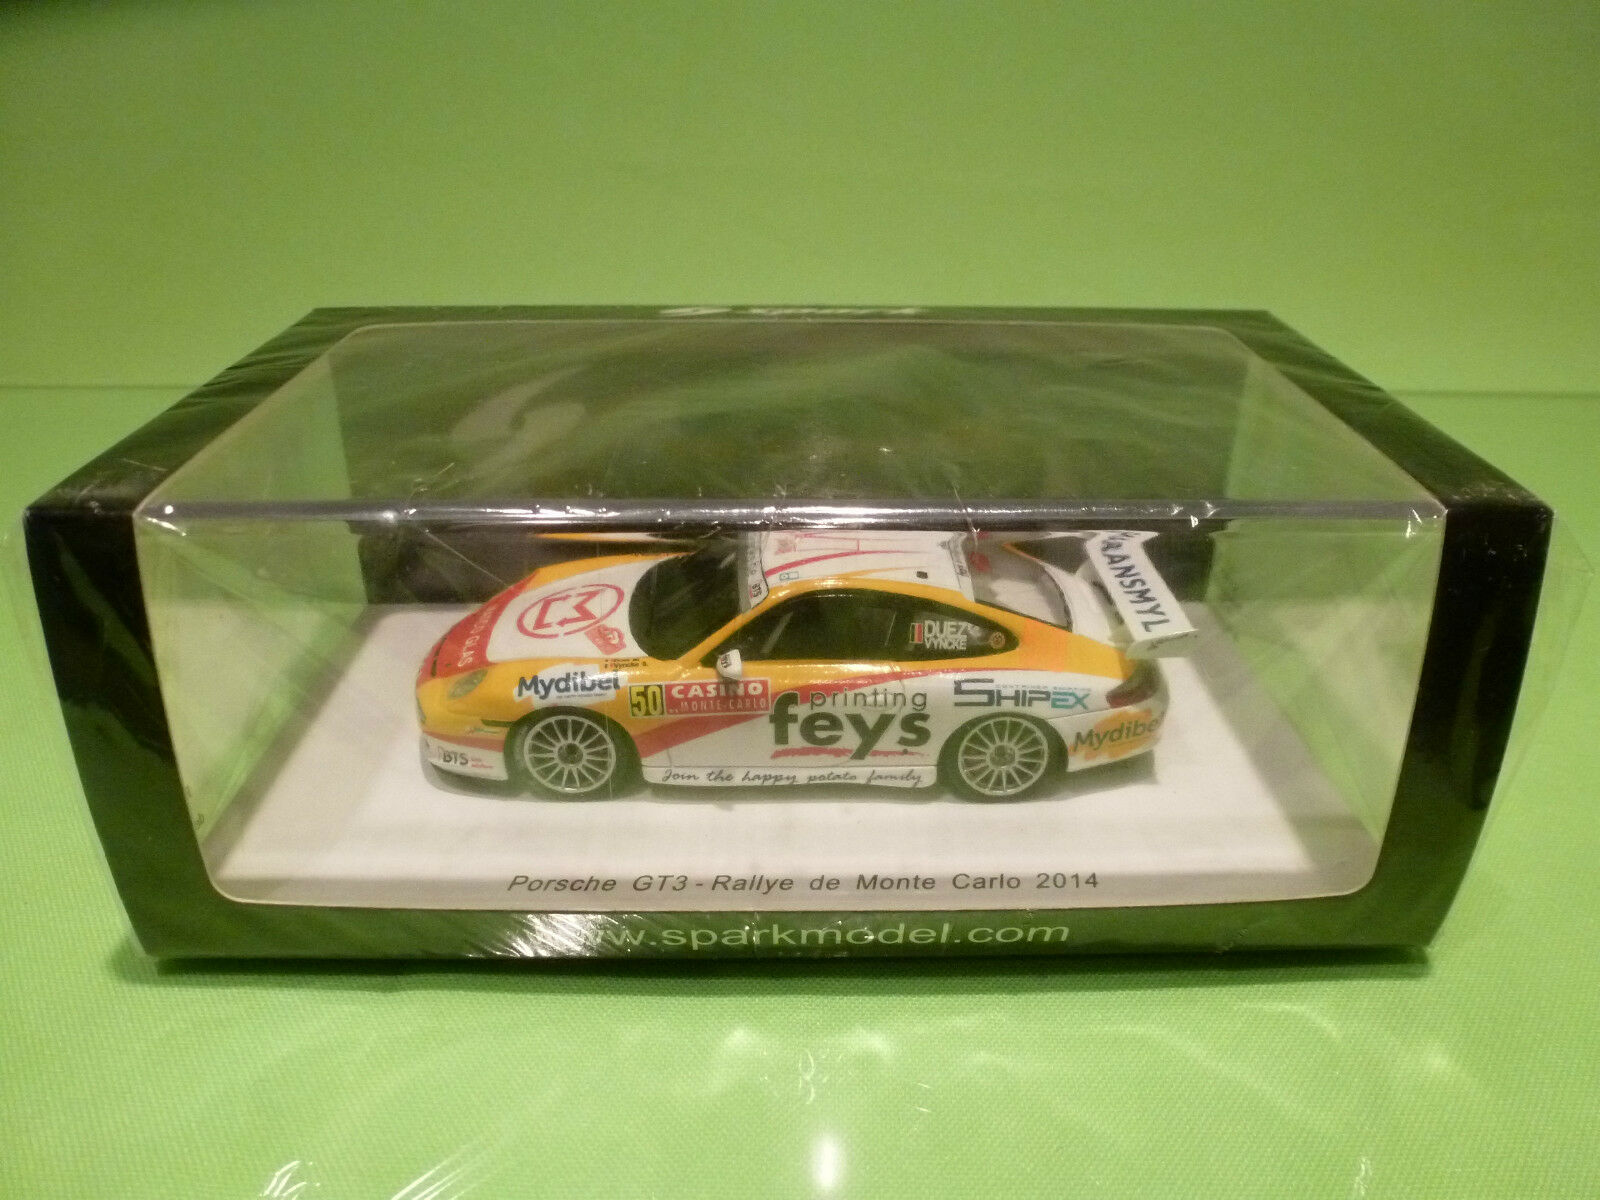 SPARK 1 43 PORSCHE GT3 RALLY MONTE CARLO 2014 - ORIGINAL BOX - IN MINT CONDITION